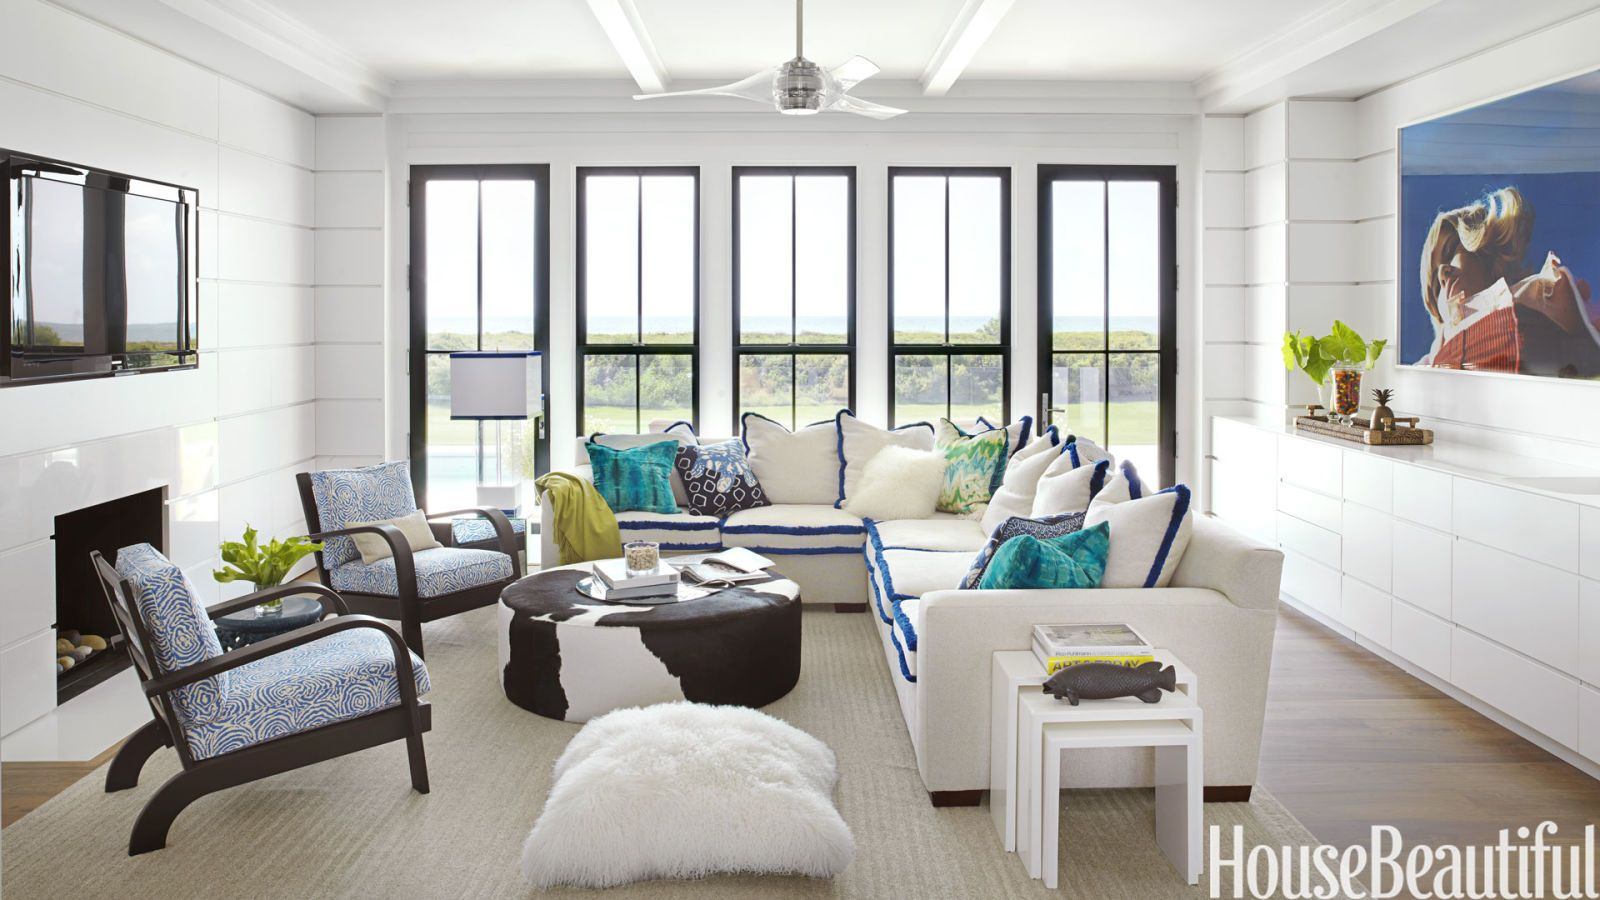 10 Surprising Ways to Add Color to Your Home